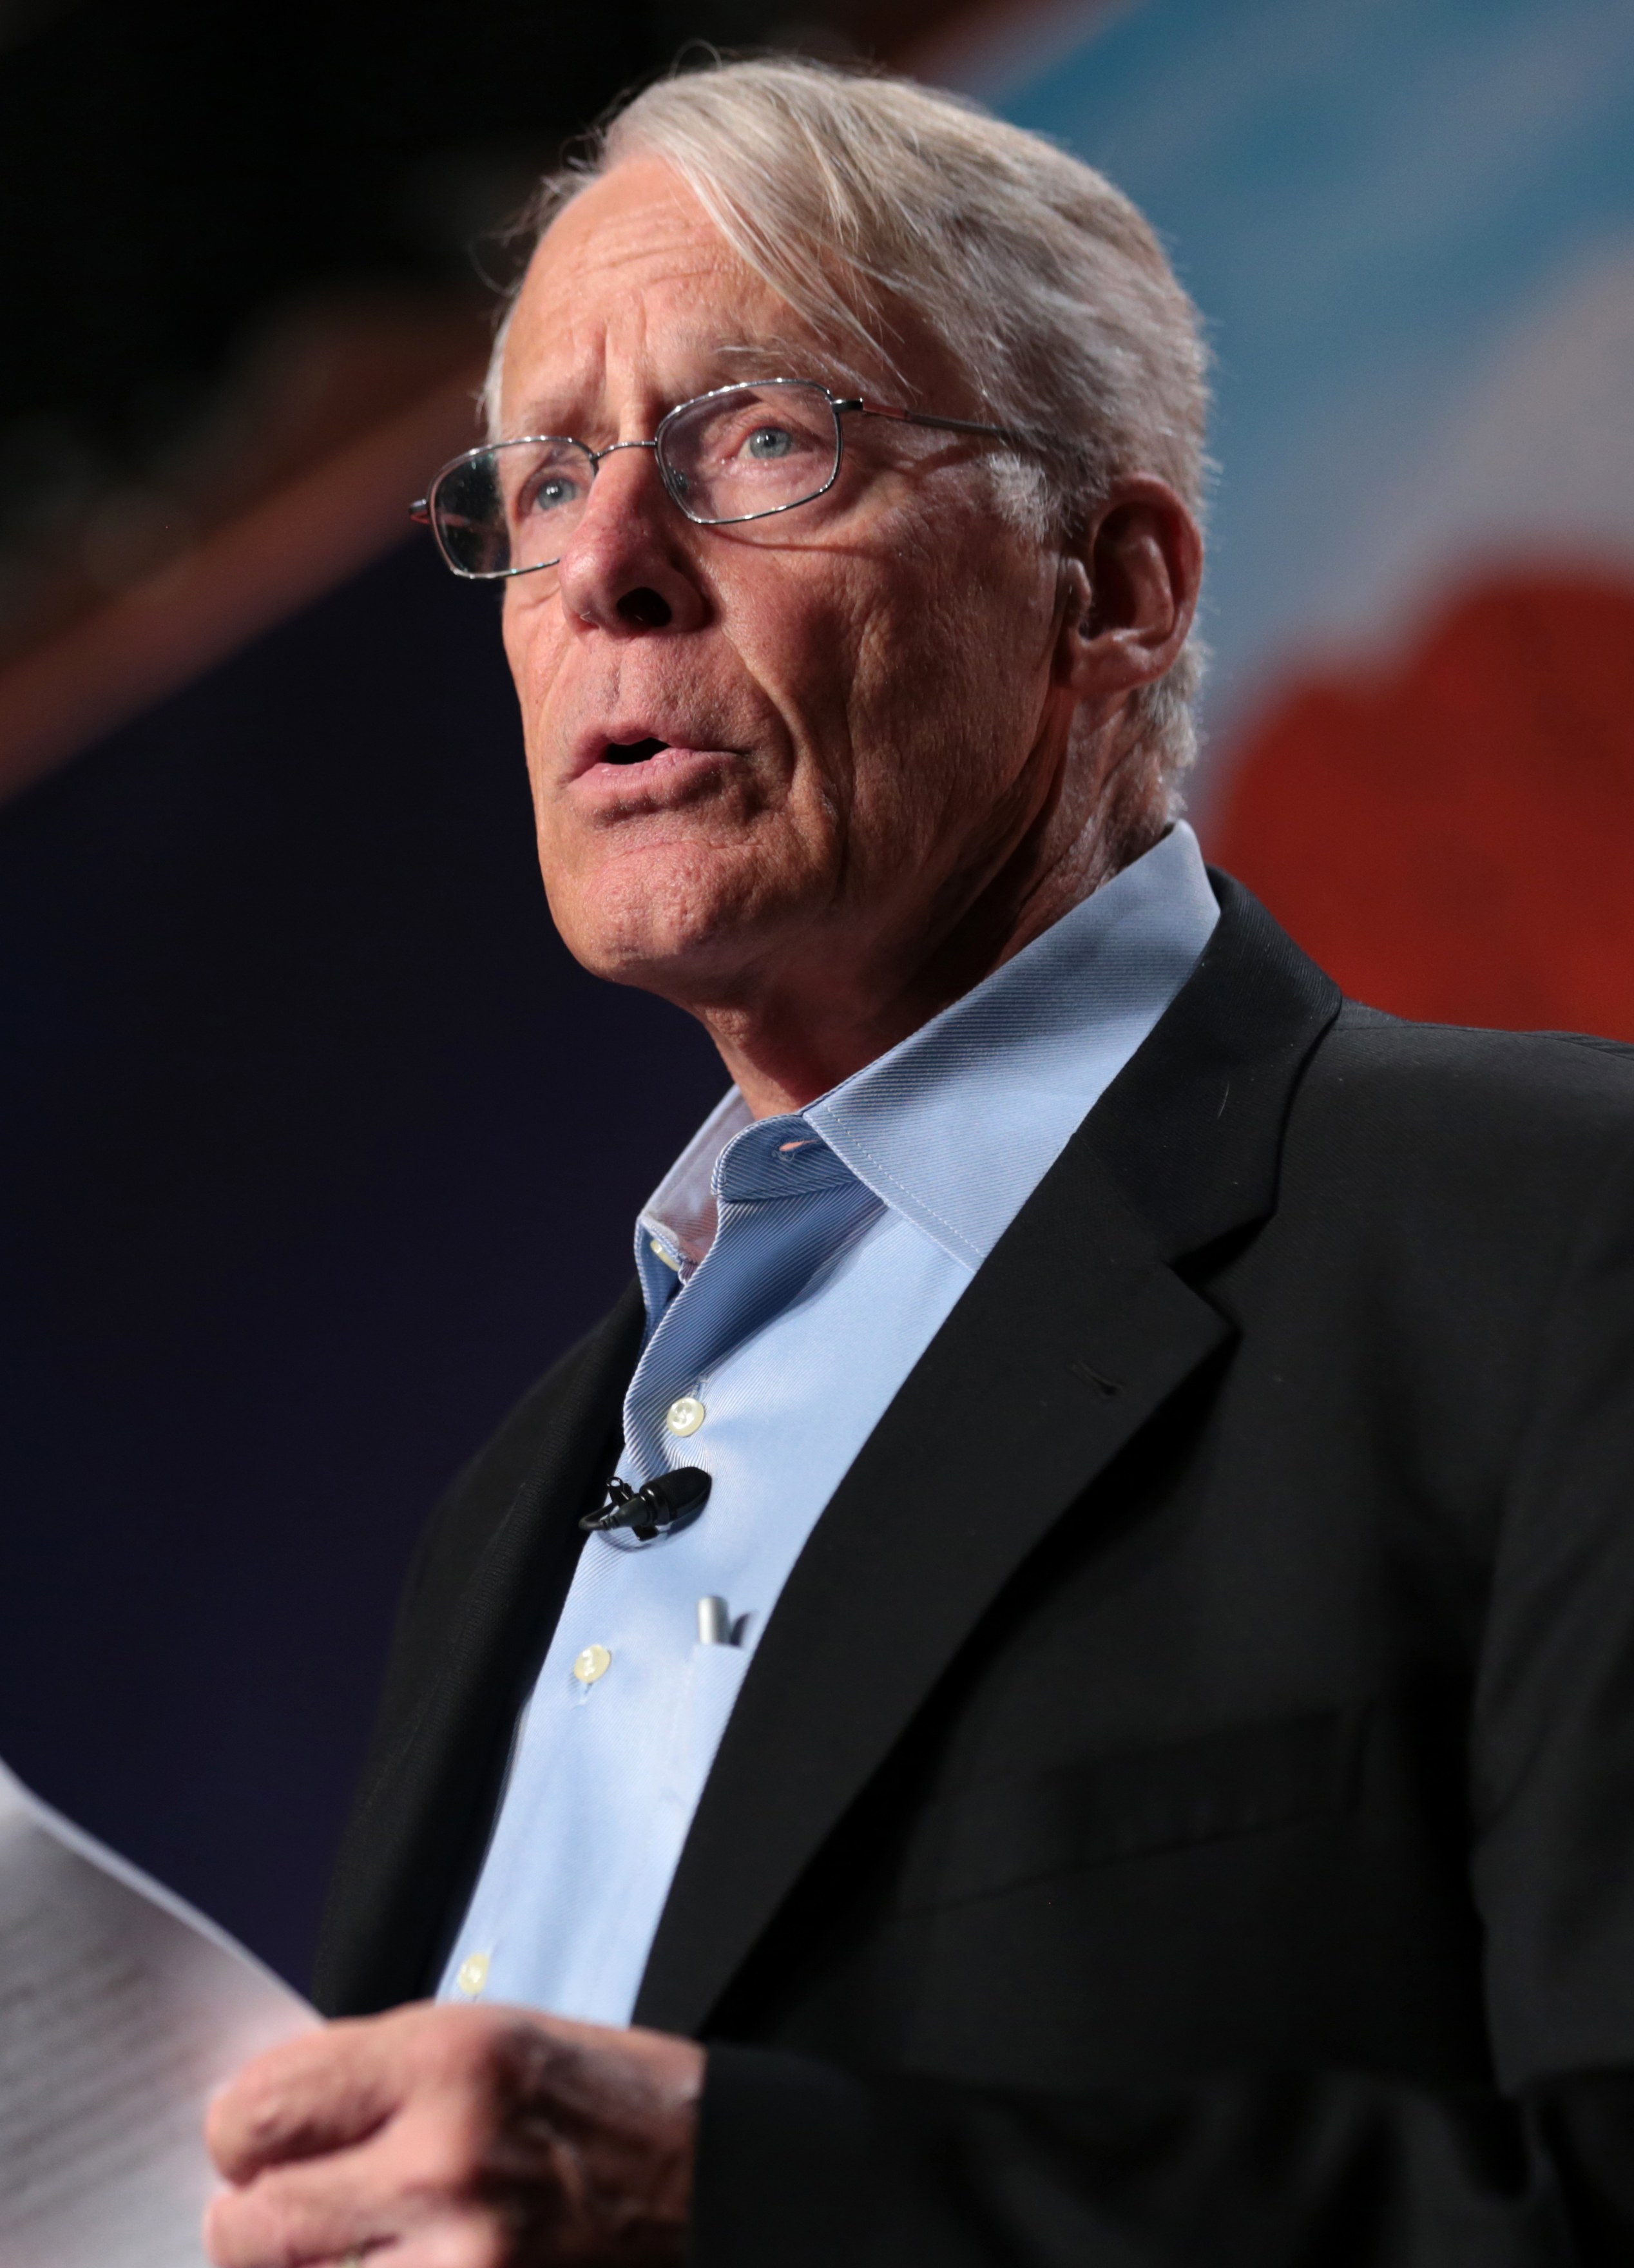 The 76-year old son of father Sam Walton and mother Helen Walton  S. Robson Walton in 2021 photo. S. Robson Walton earned a  million dollar salary - leaving the net worth at 38500 million in 2021